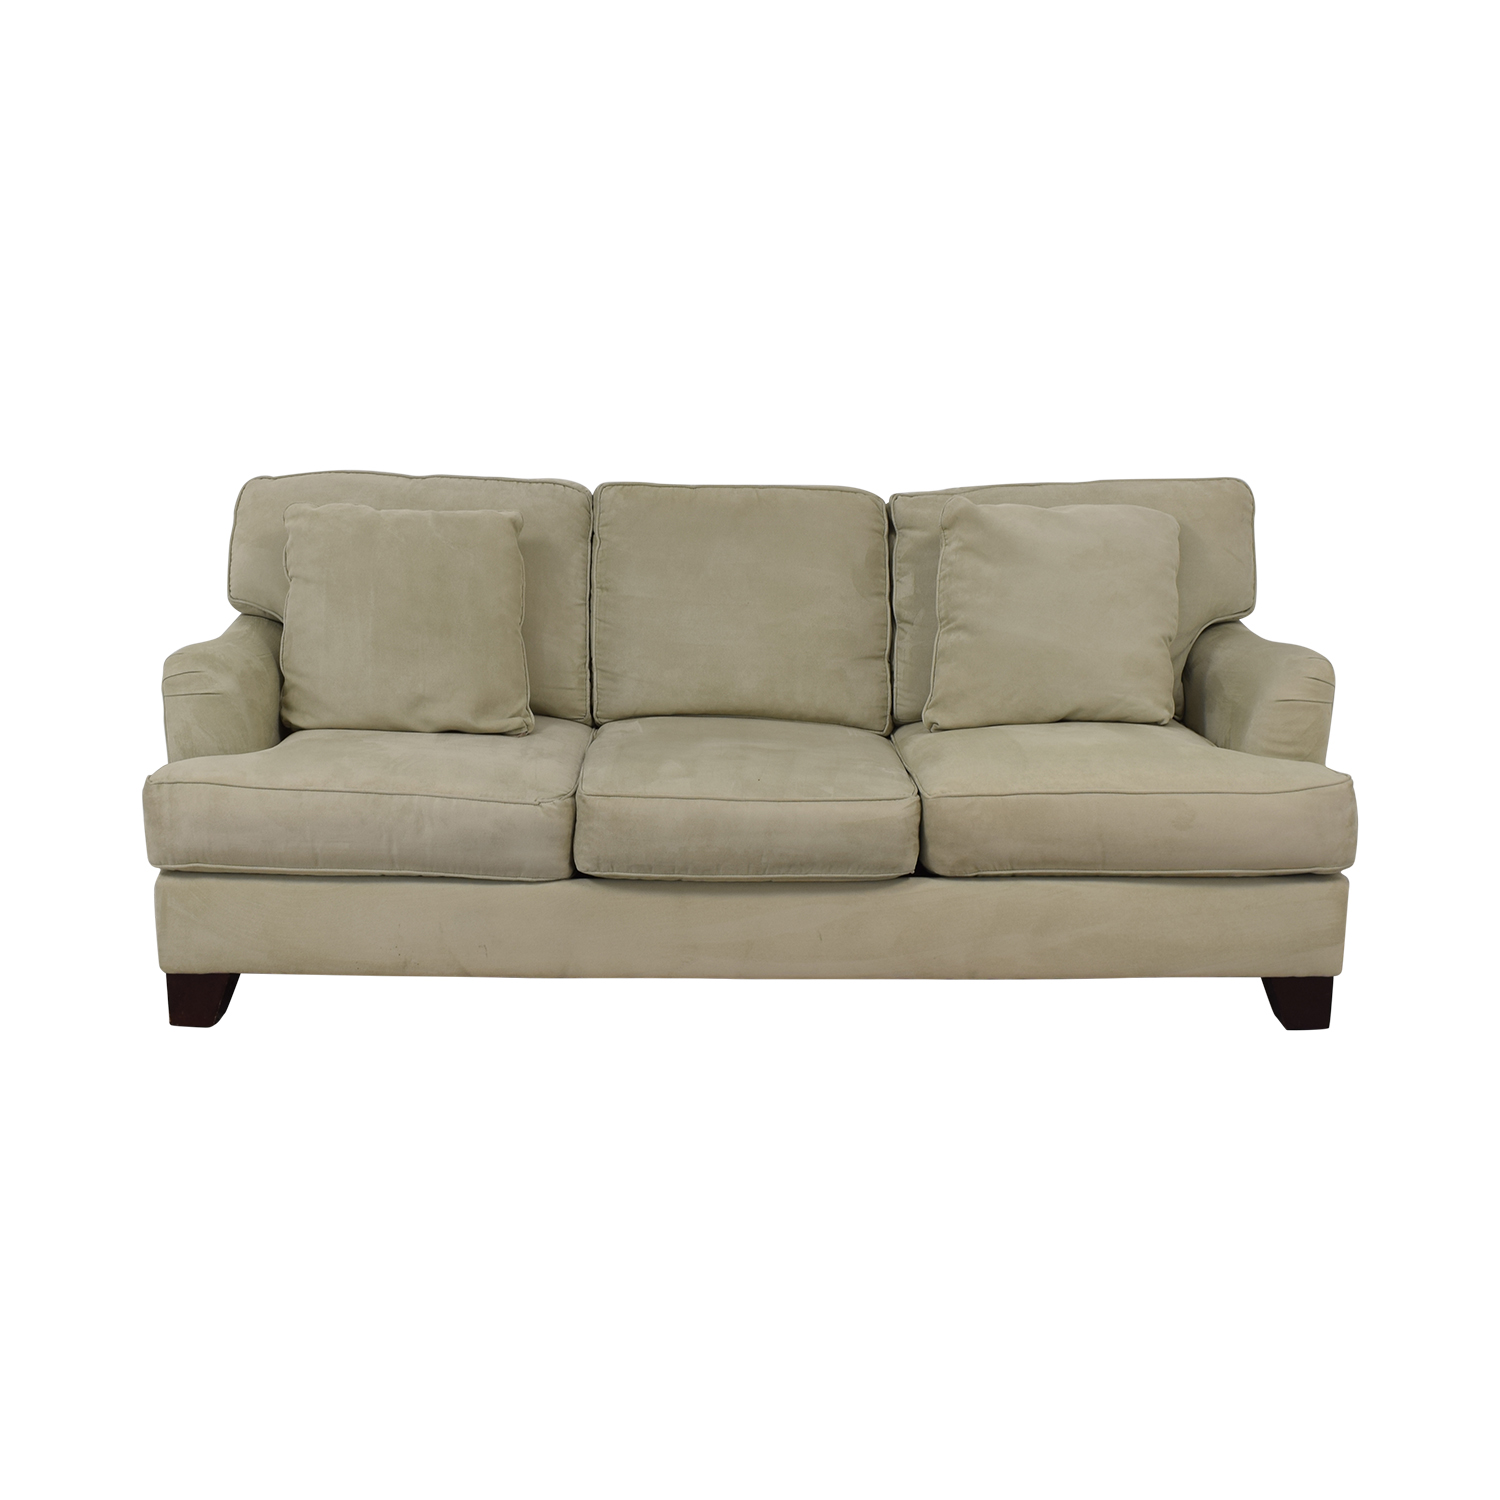 Bloomingdale's Bloomingdale's Three Cushion Sofa nj